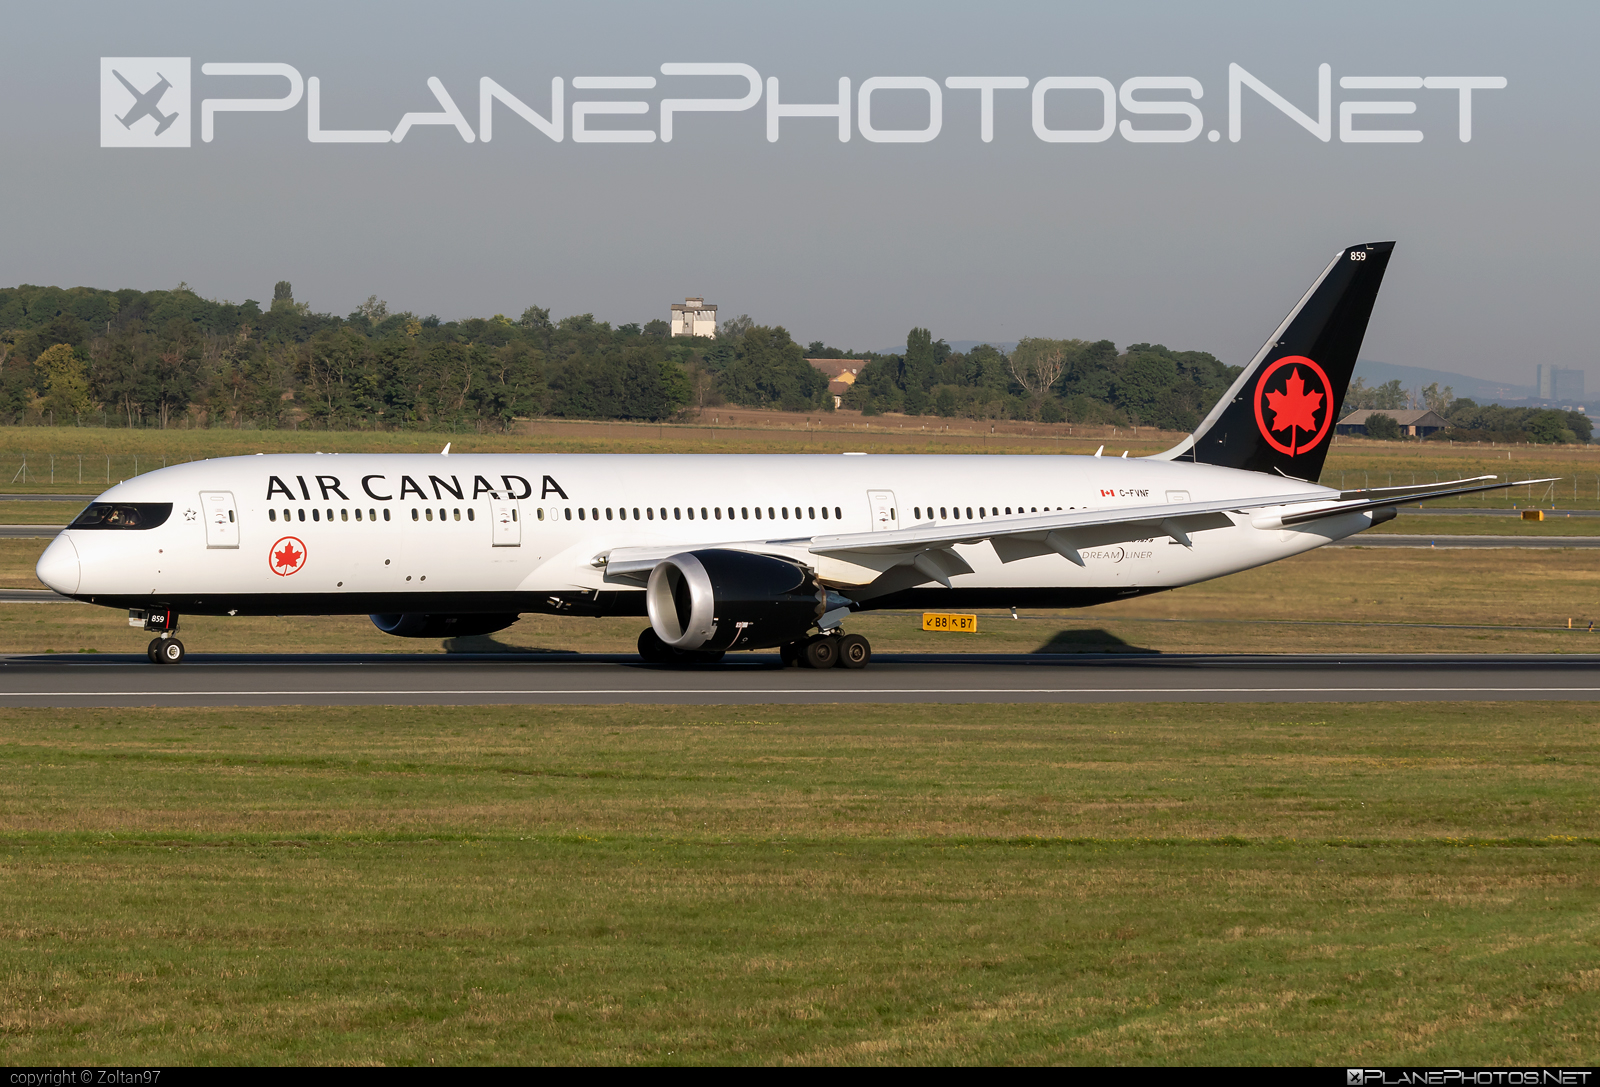 Boeing 787-9 Dreamliner - C-FVNF operated by Air Canada #aircanada #b787 #boeing #boeing787 #dreamliner